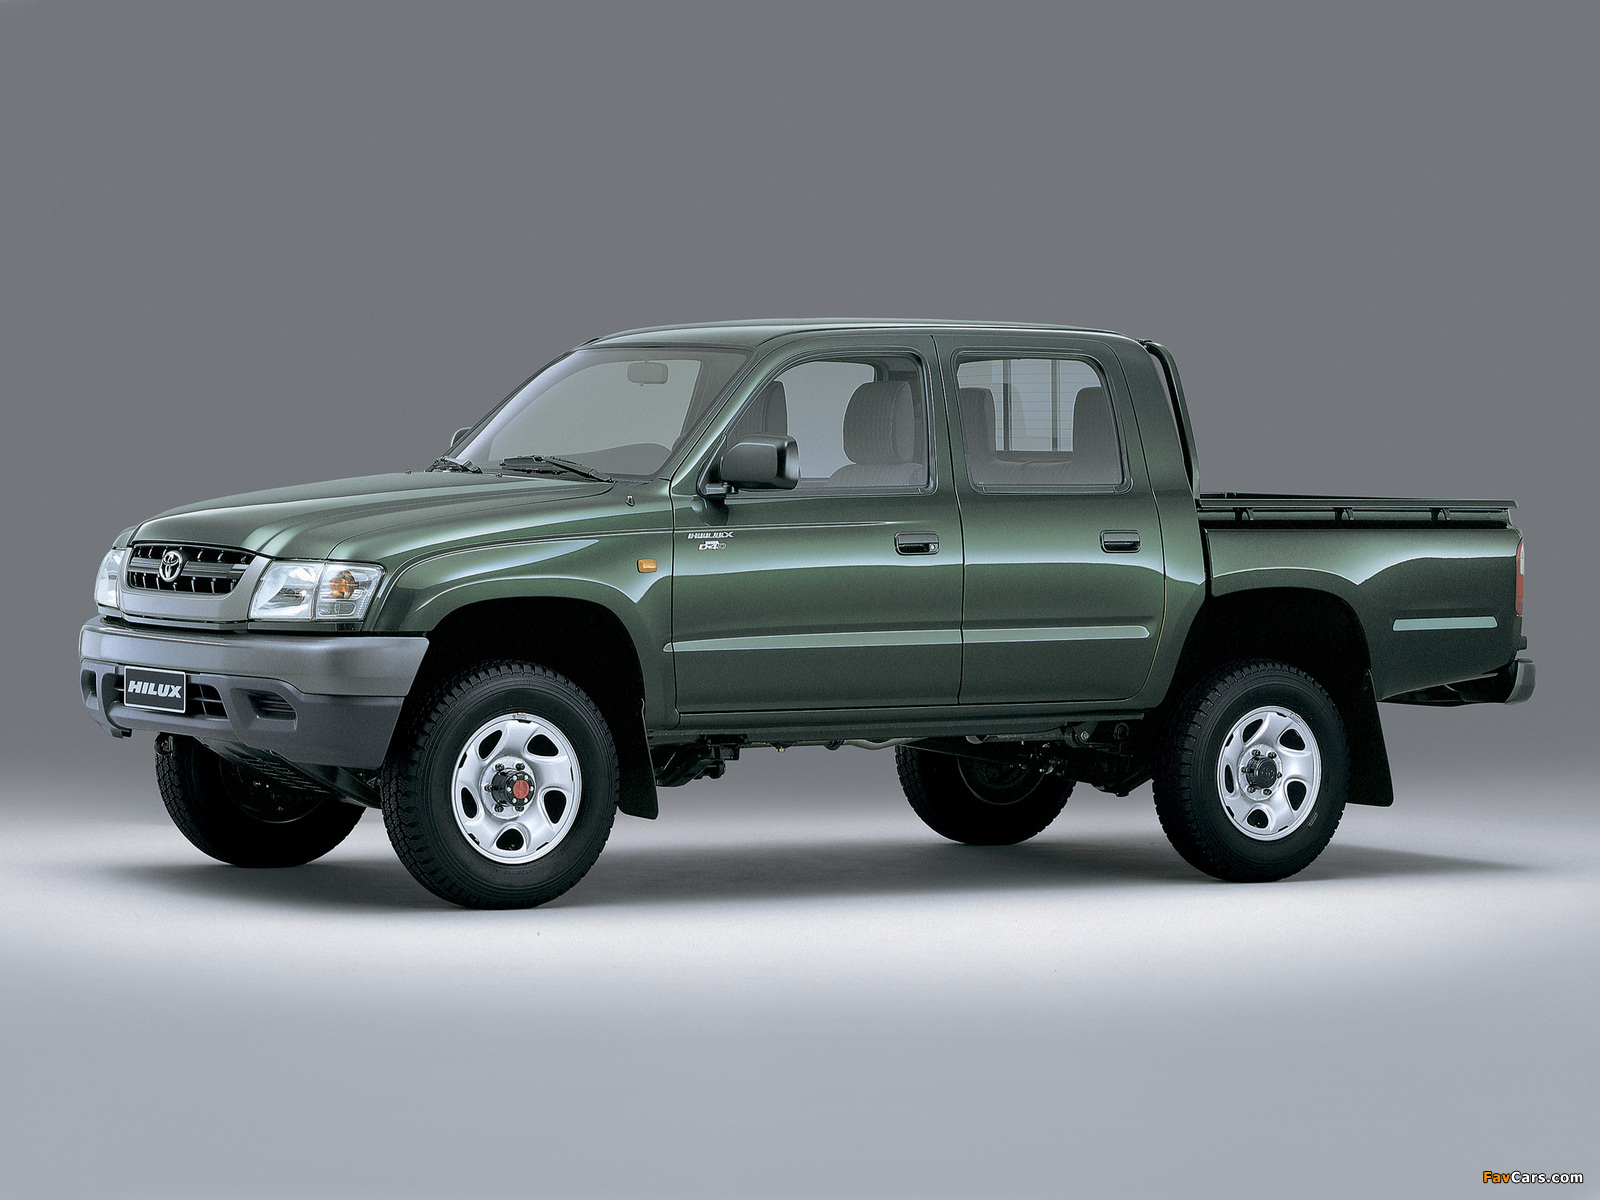 Toyota Hilux Double Cab 2001 05 Images 1600x1200